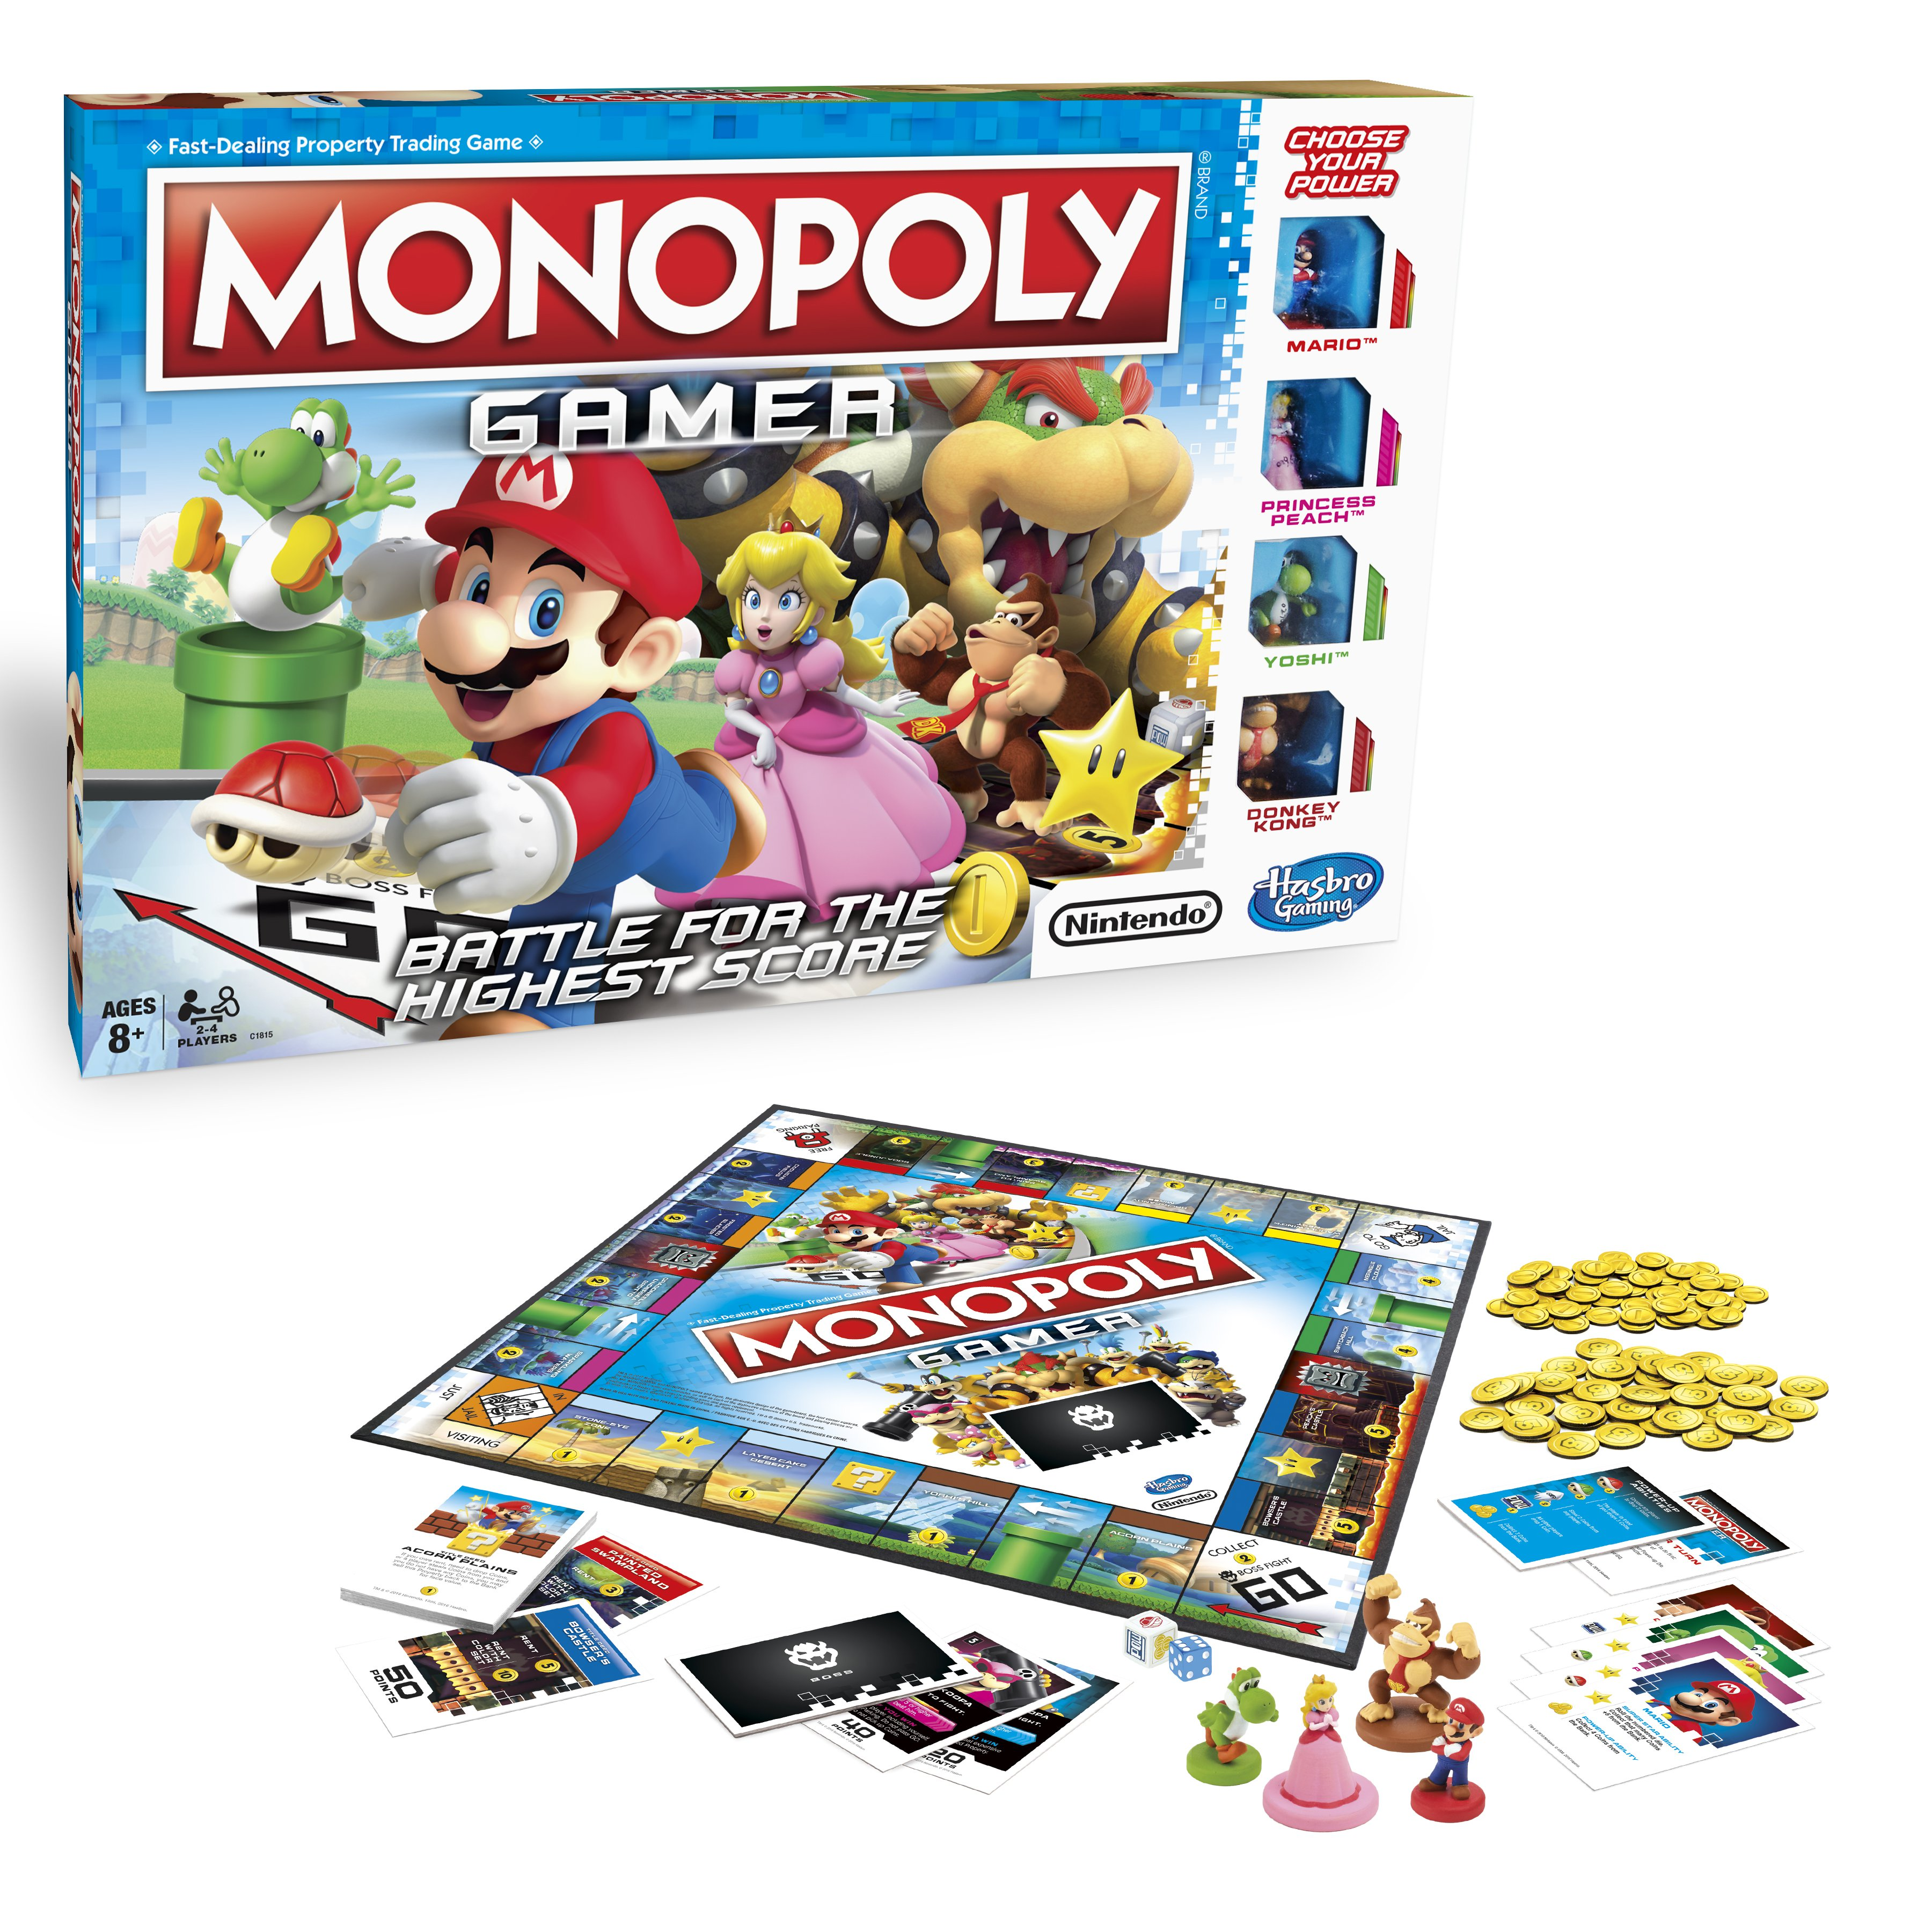 Monopoly - GAMER Edition